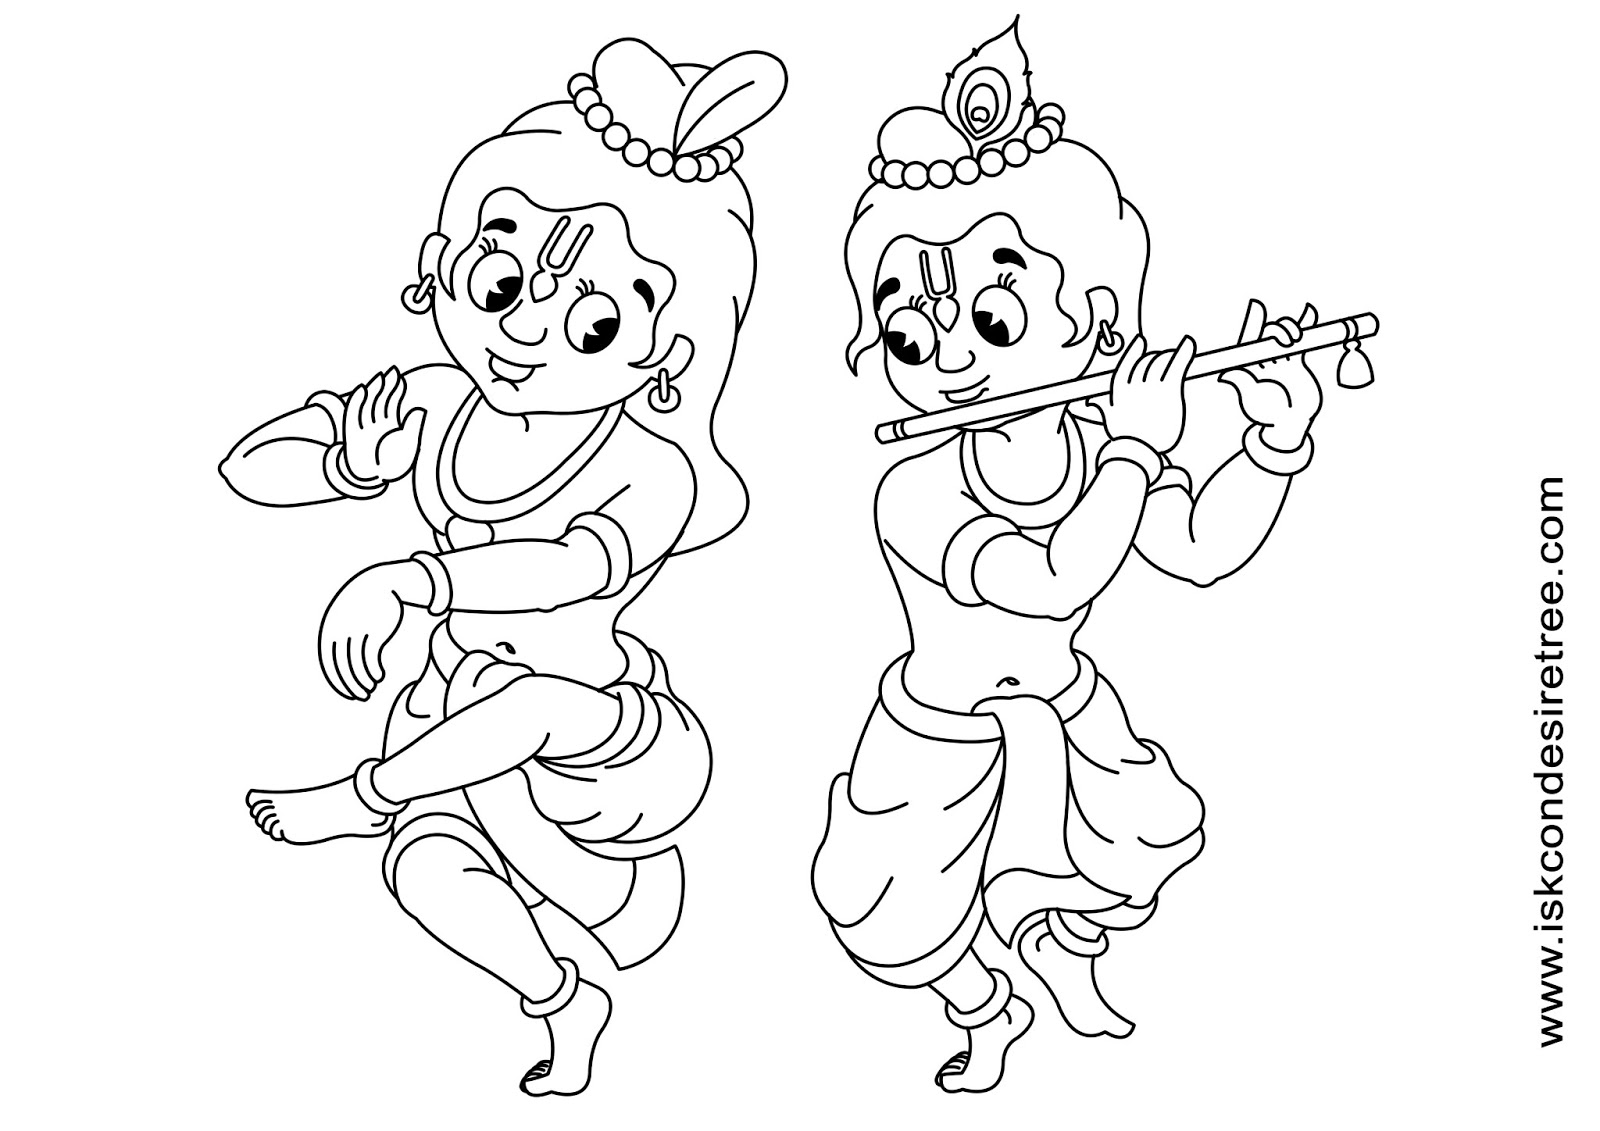 Little krishna coloring pages sketch coloring page for Krishna coloring pages